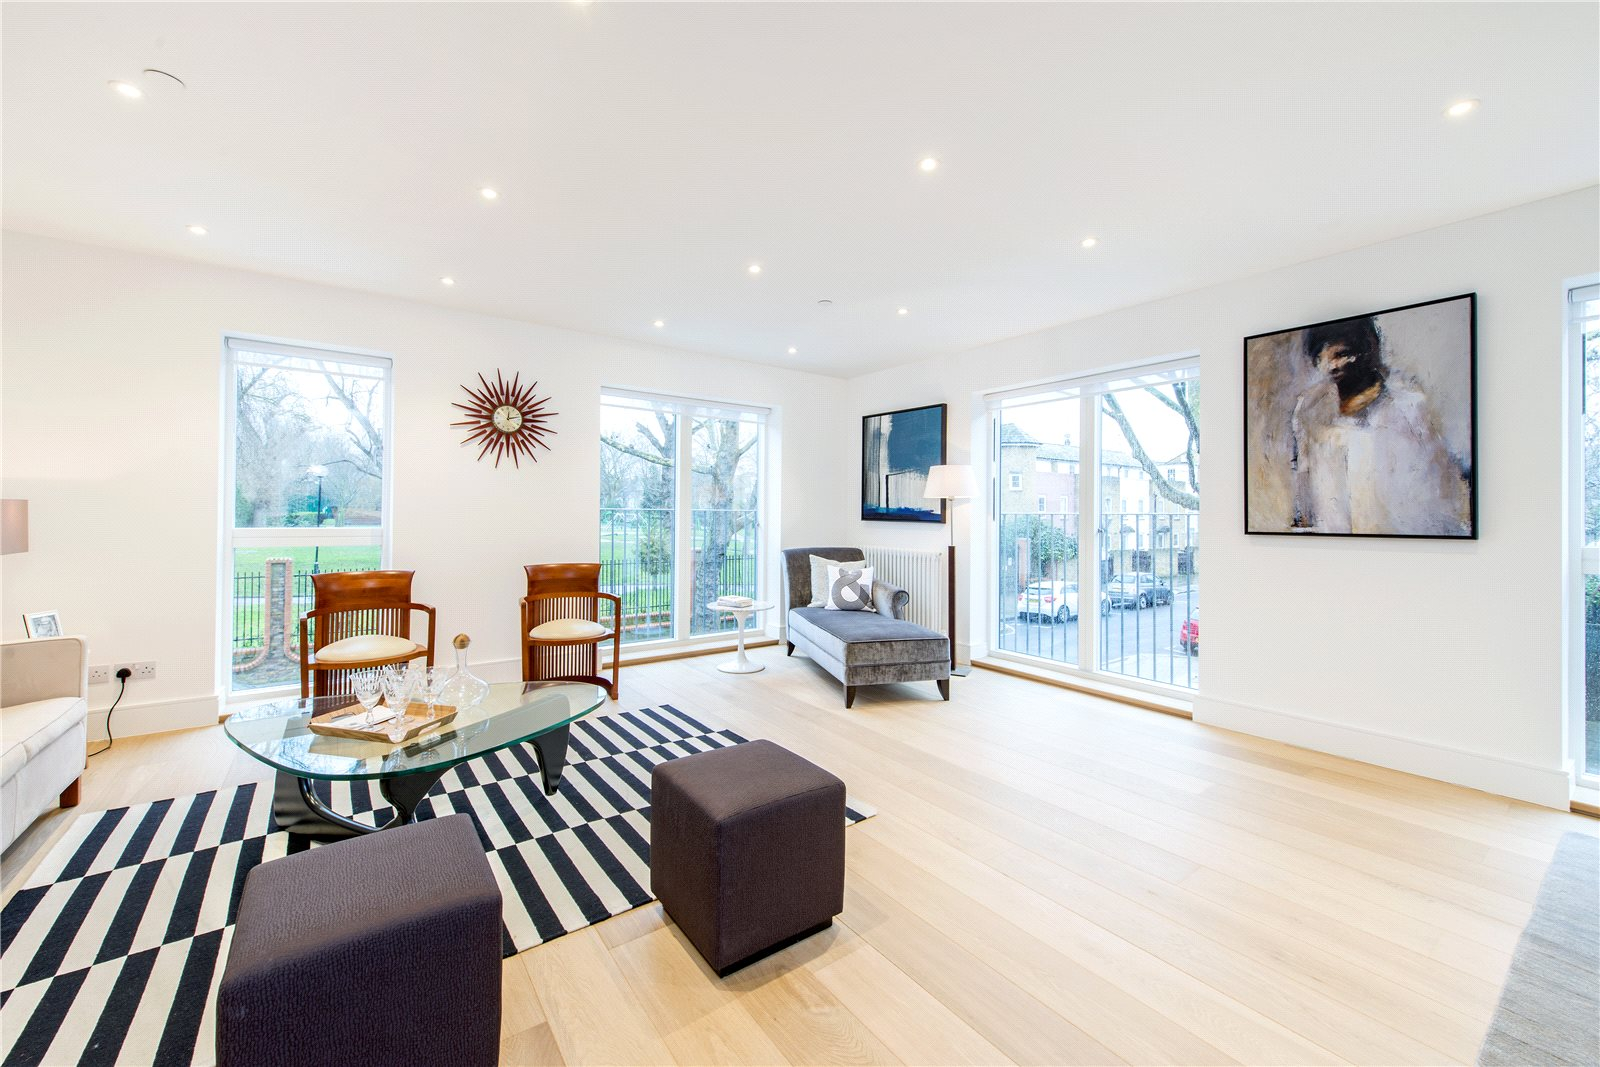 Single Family Home for Sale at Sirdar Road, Holland Park, W11 Holland Park, England